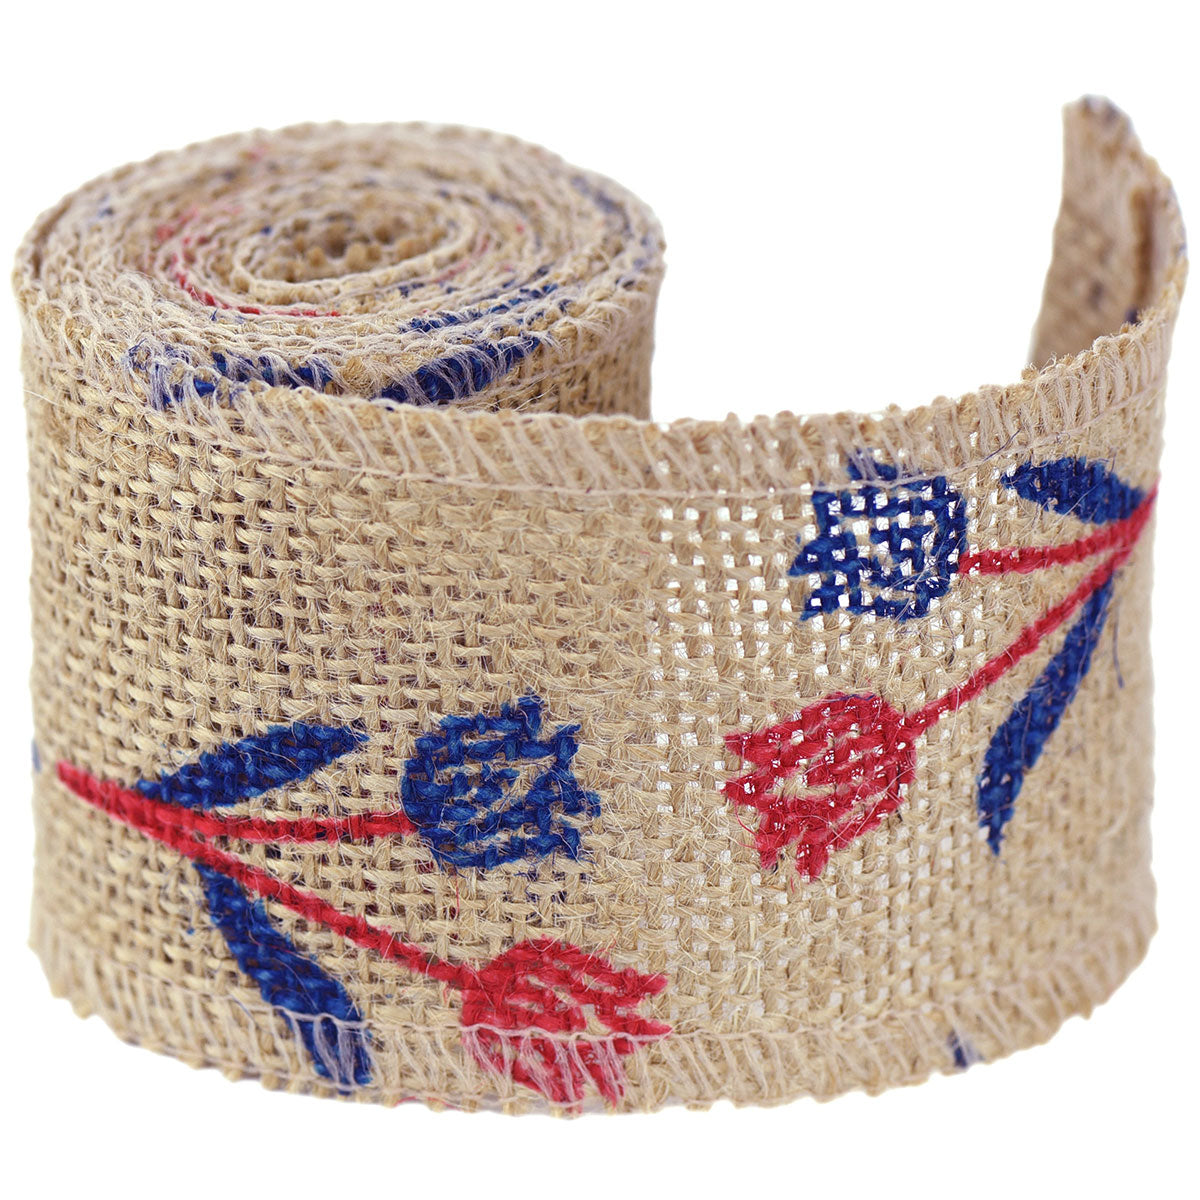 FiveSeasonStuff Natural Burlap Ribbon, Hessian Jute Ribbon Twine Roll, for Gift Wrap Packaging, Wedding Décor, Home Party Art Craft DIY Decoration (Blue & Red Flowers)